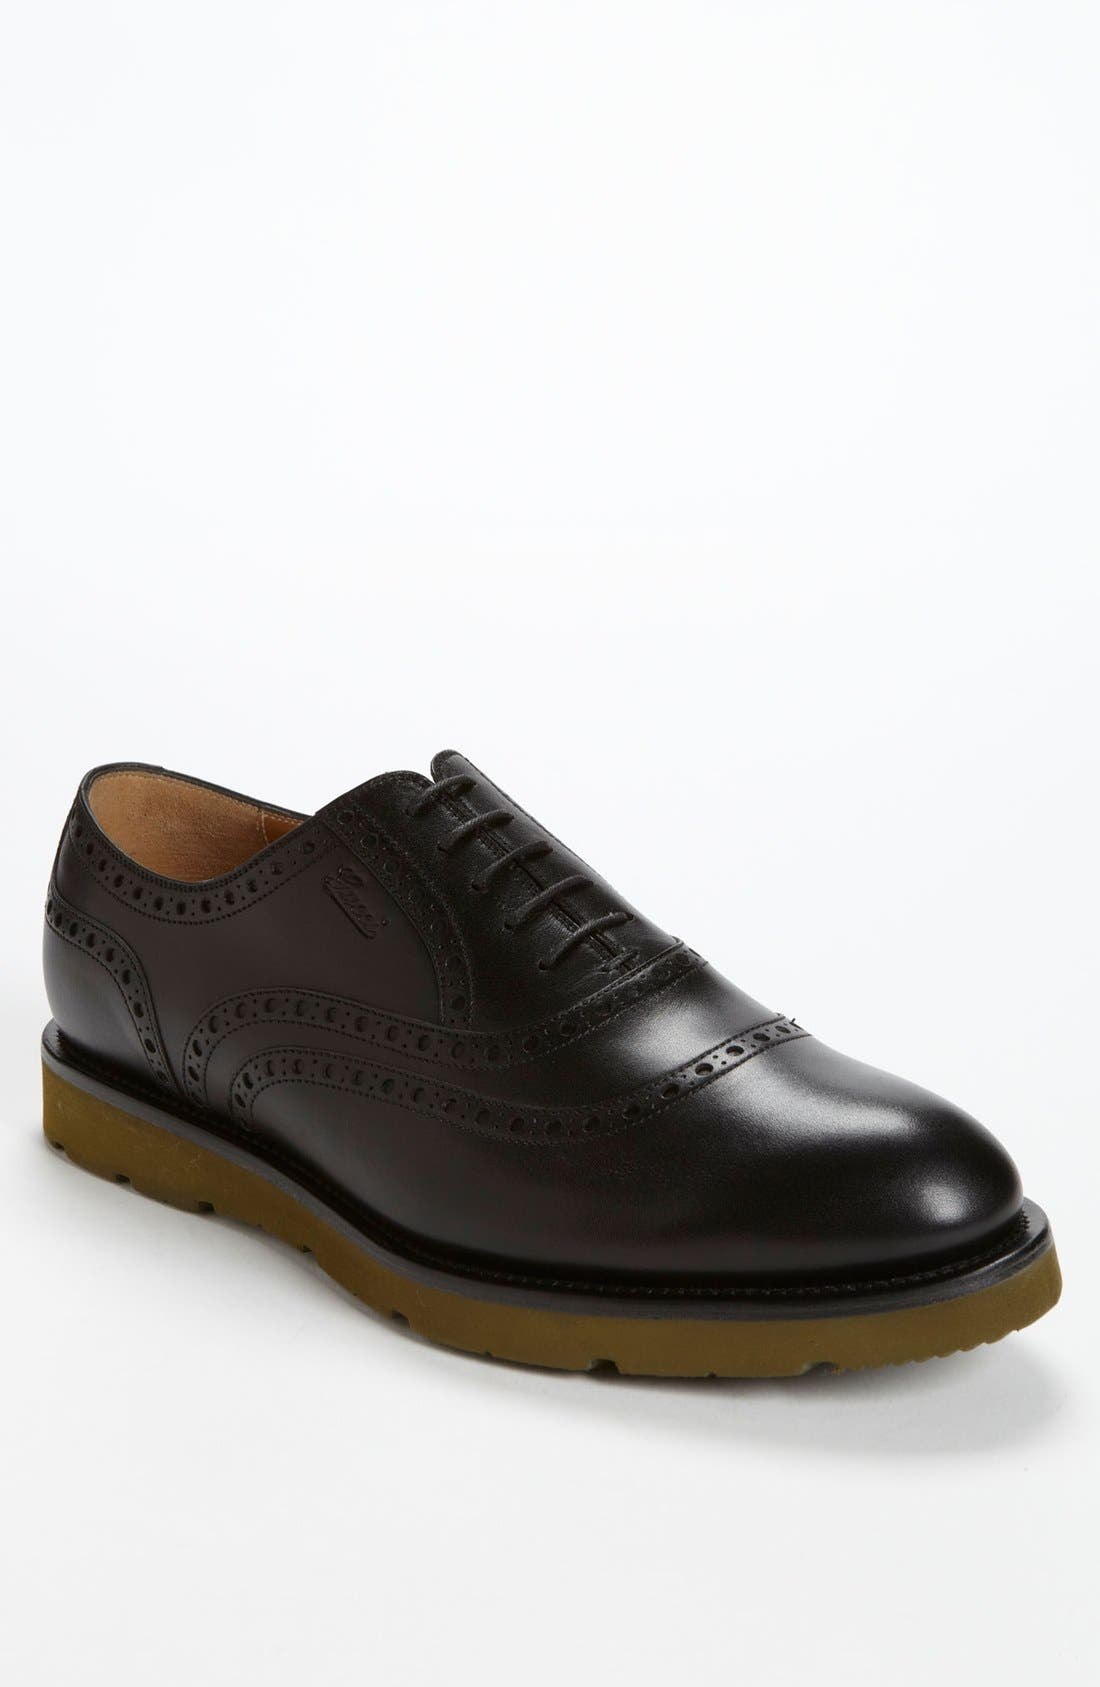 Main Image - Gucci 'Fenis' Oxford